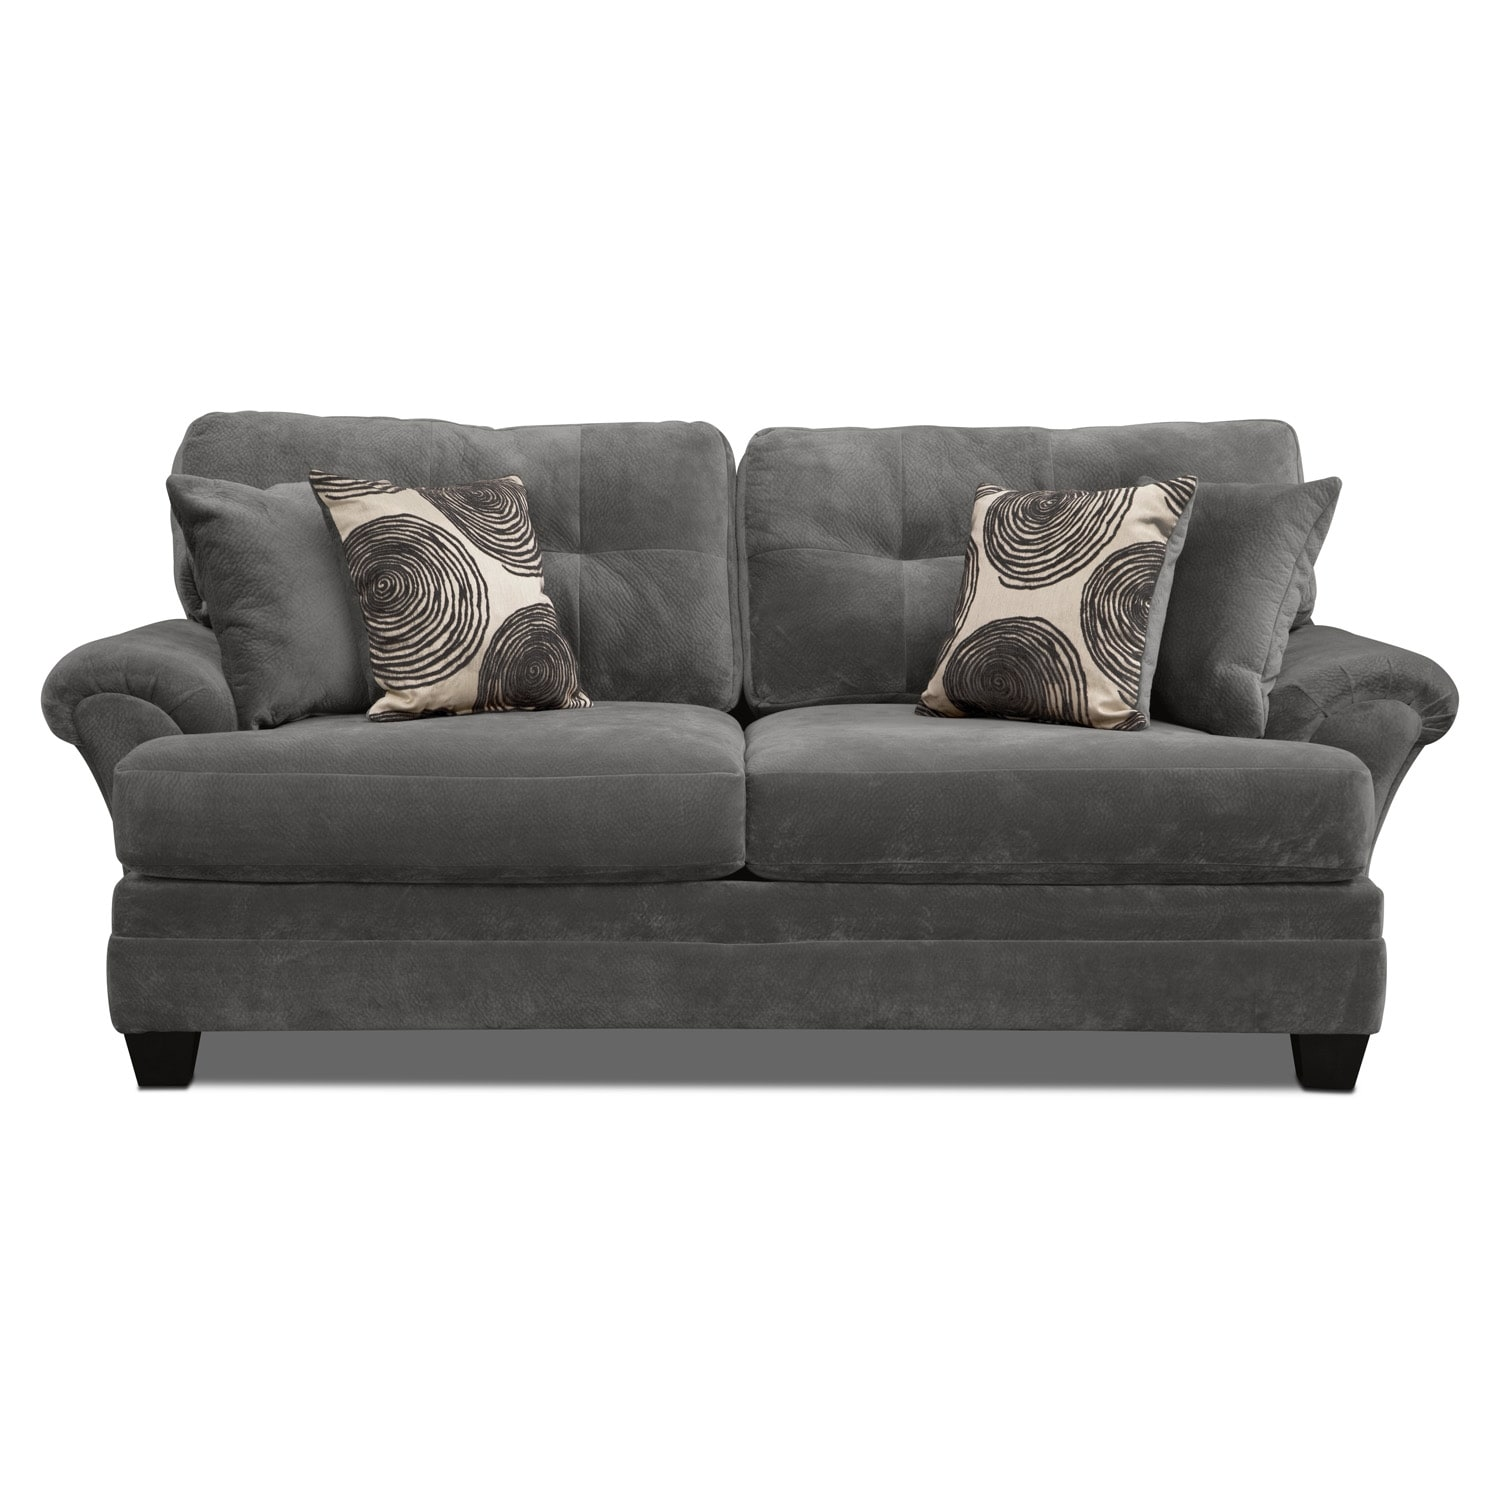 Cordelle Sofa Gray American Signature Furniture